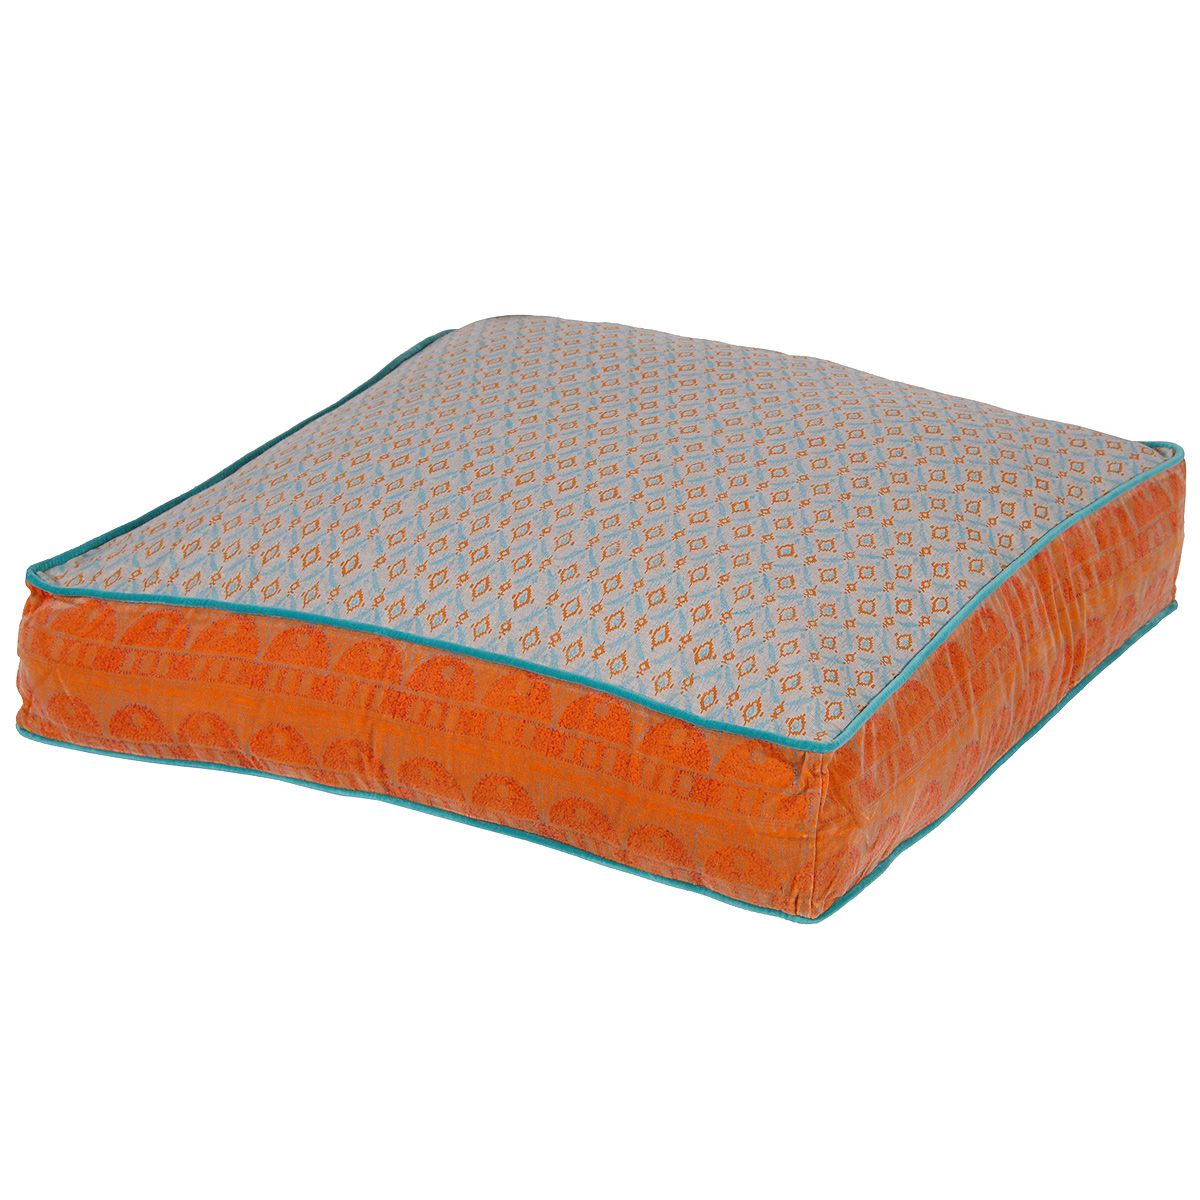 Large Festival Floor Cushion in Orange by The French Bedroom ...